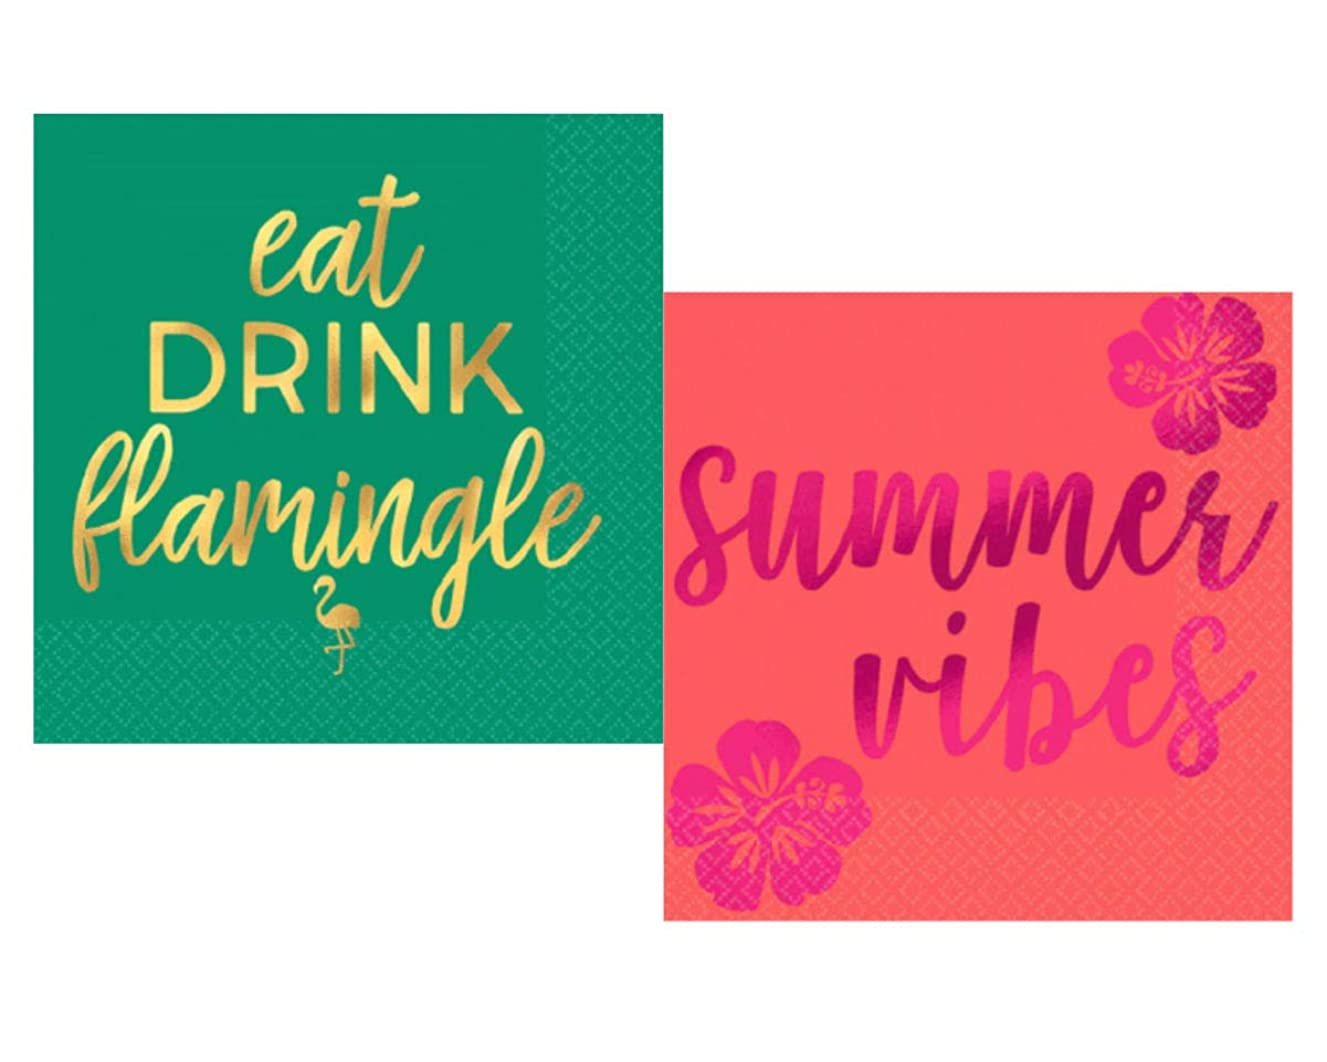 Tropical Flamingle Aloha Summer Vibes Party Napkins Bundle: Includes 32 Hot-Stamped Cocktail Beverage Napkins in 2 Different Designs